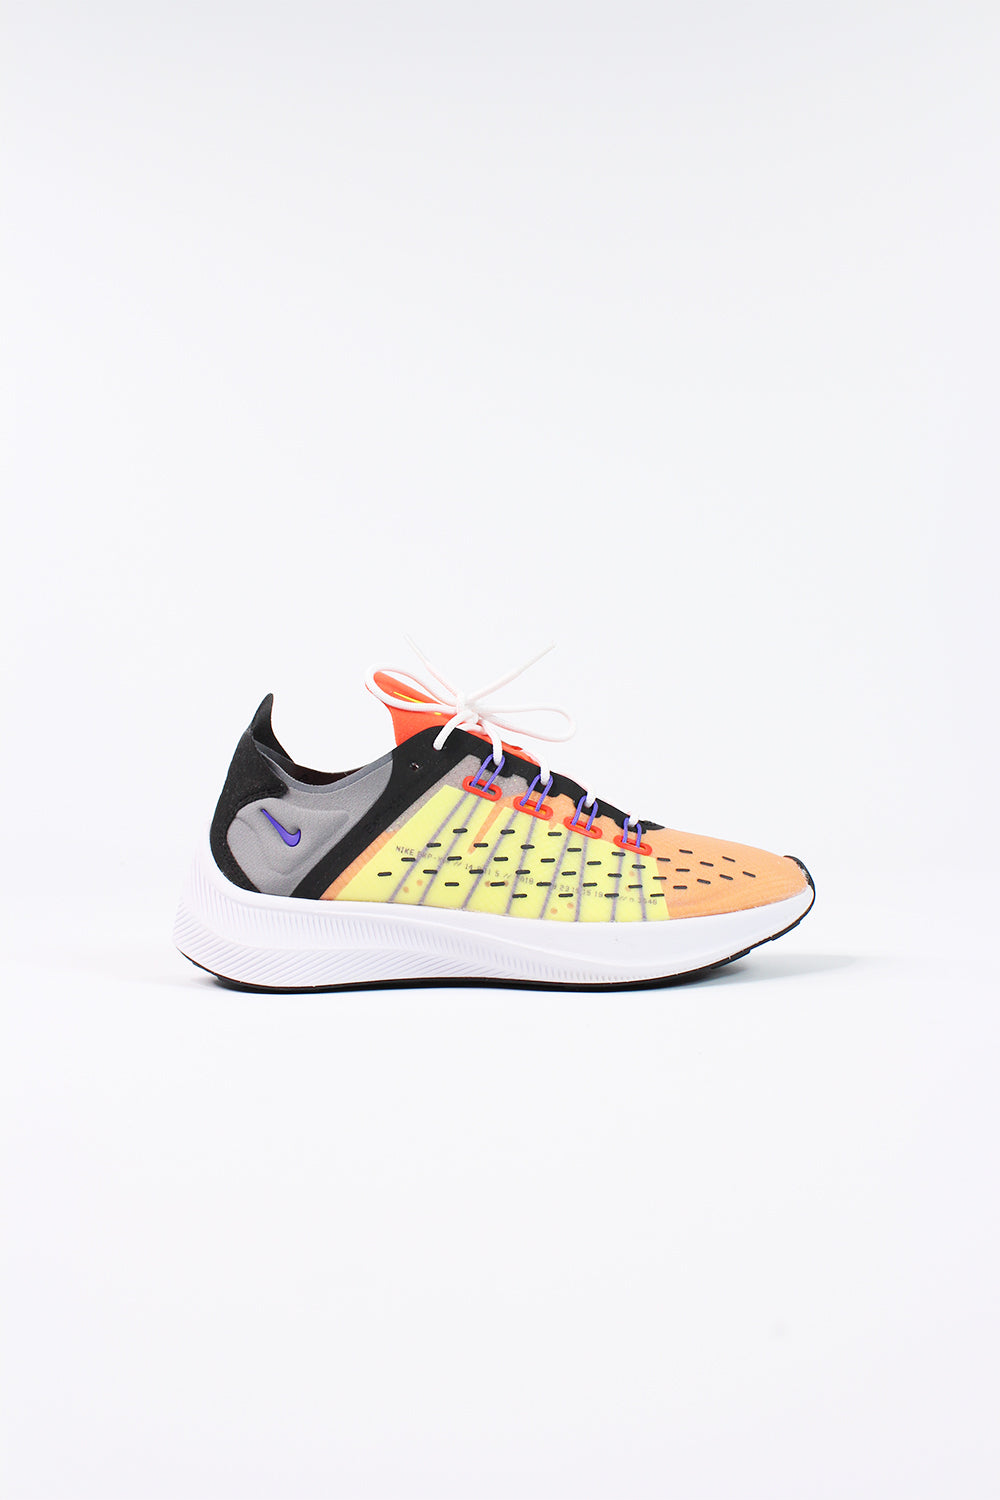 Nike - Exp X14 (Team Orange/ Persian Violet Volt Black) AO1554-800